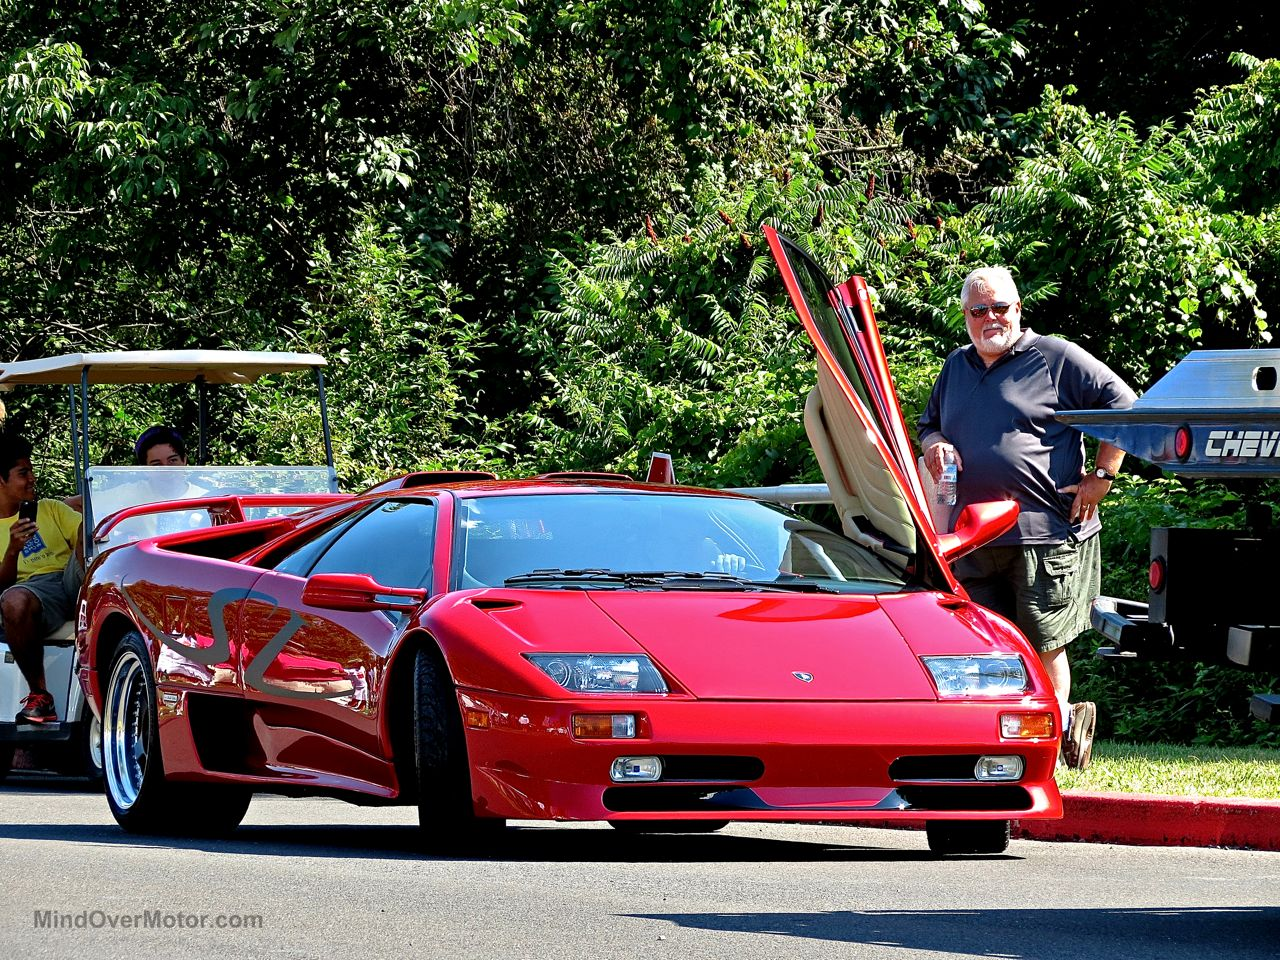 New Hope 2 Lamborghini Diablo SV